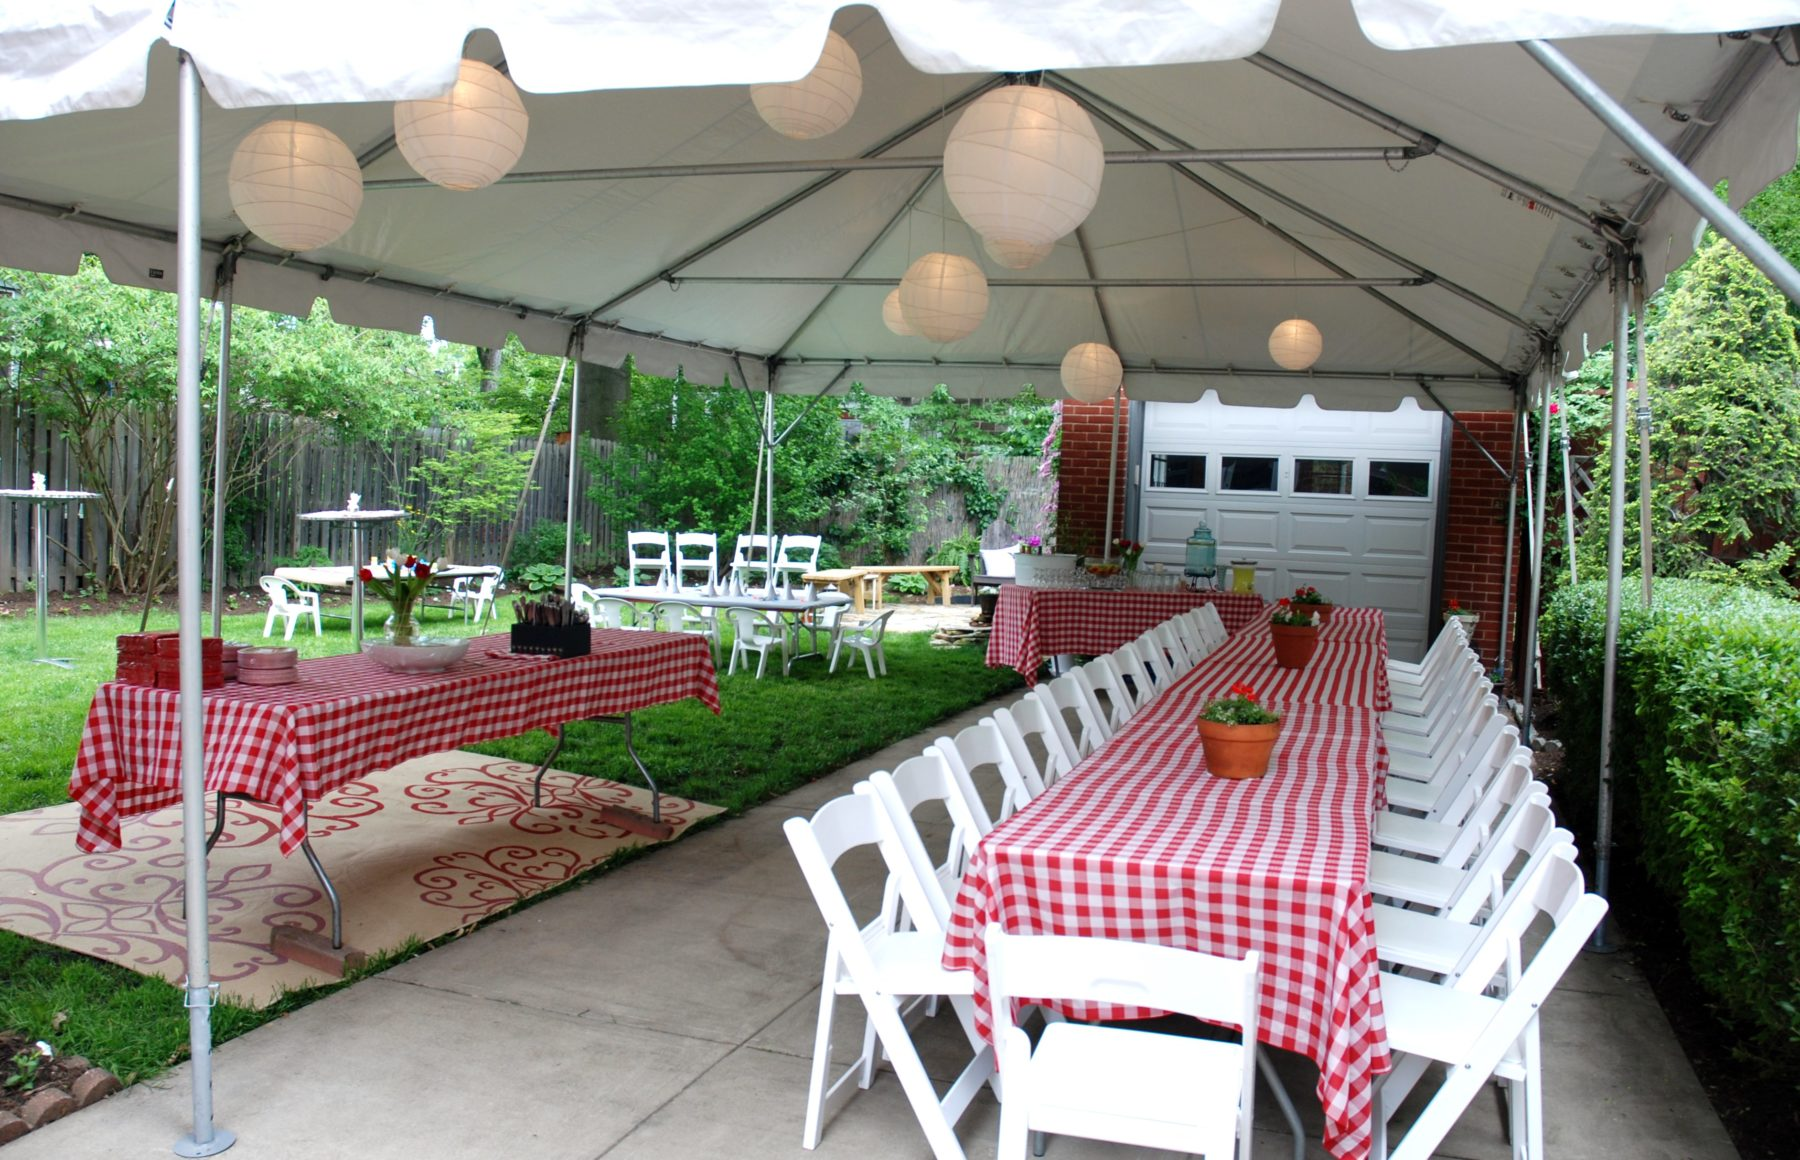 hight resolution of frame tent rental with banquet tables